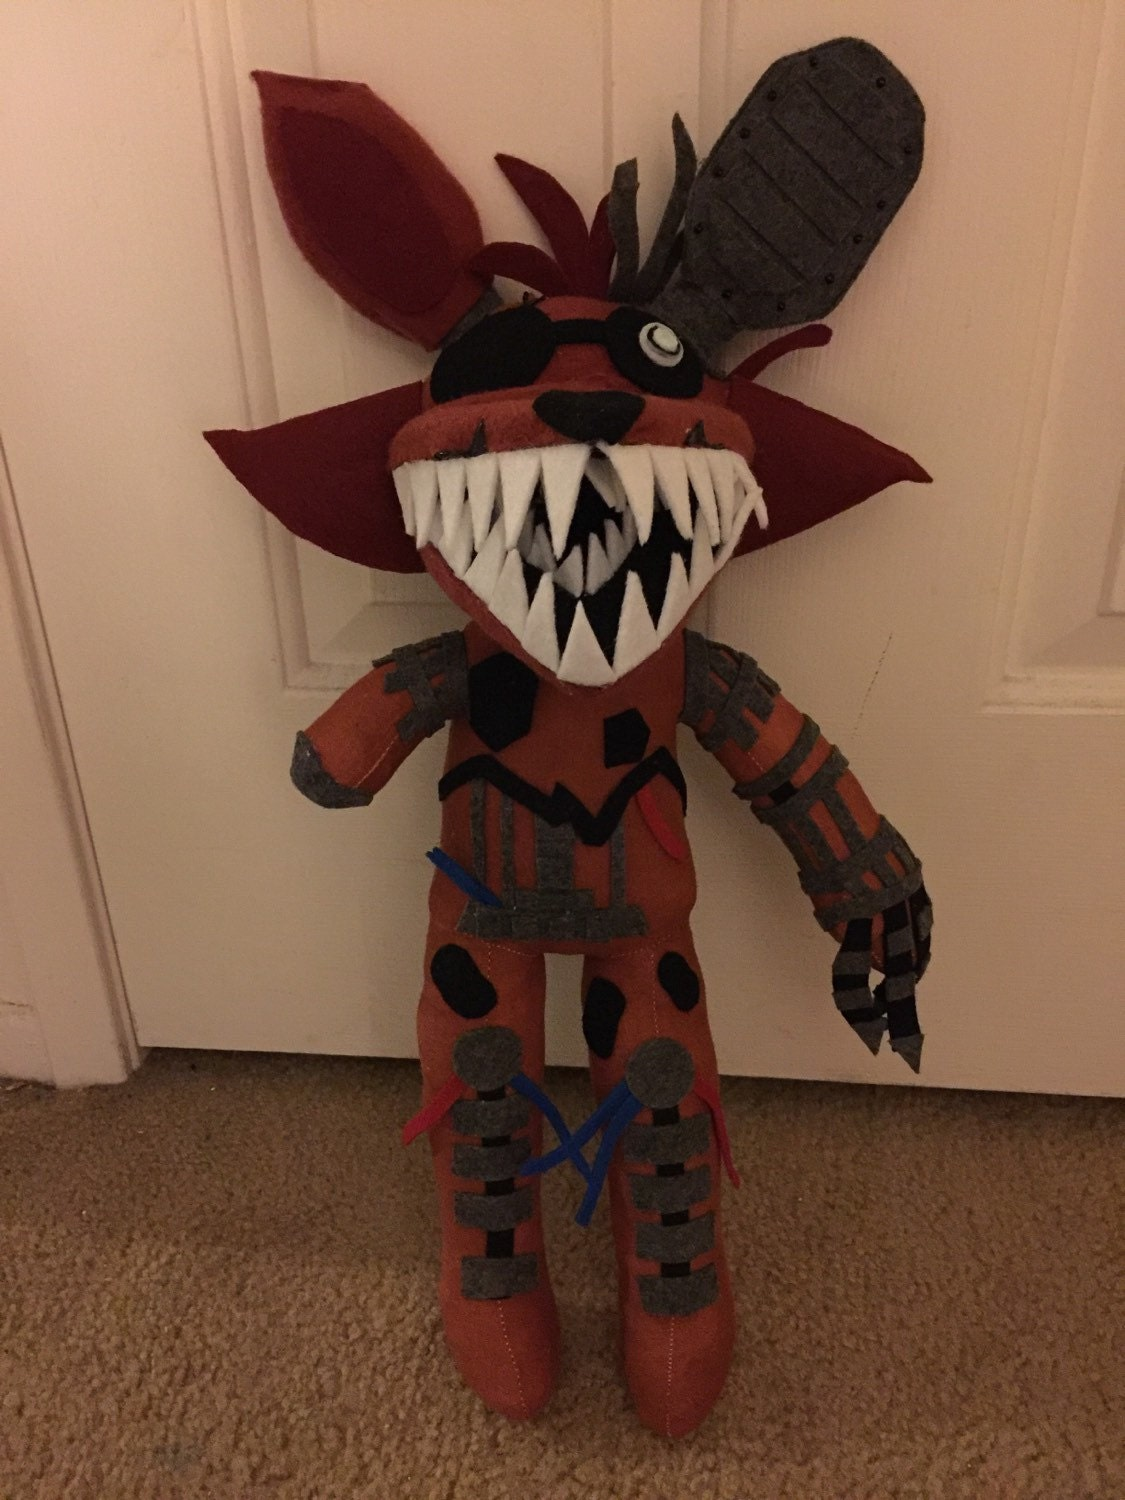 How to make your own five nights at freddys foxy plush -  Zoom